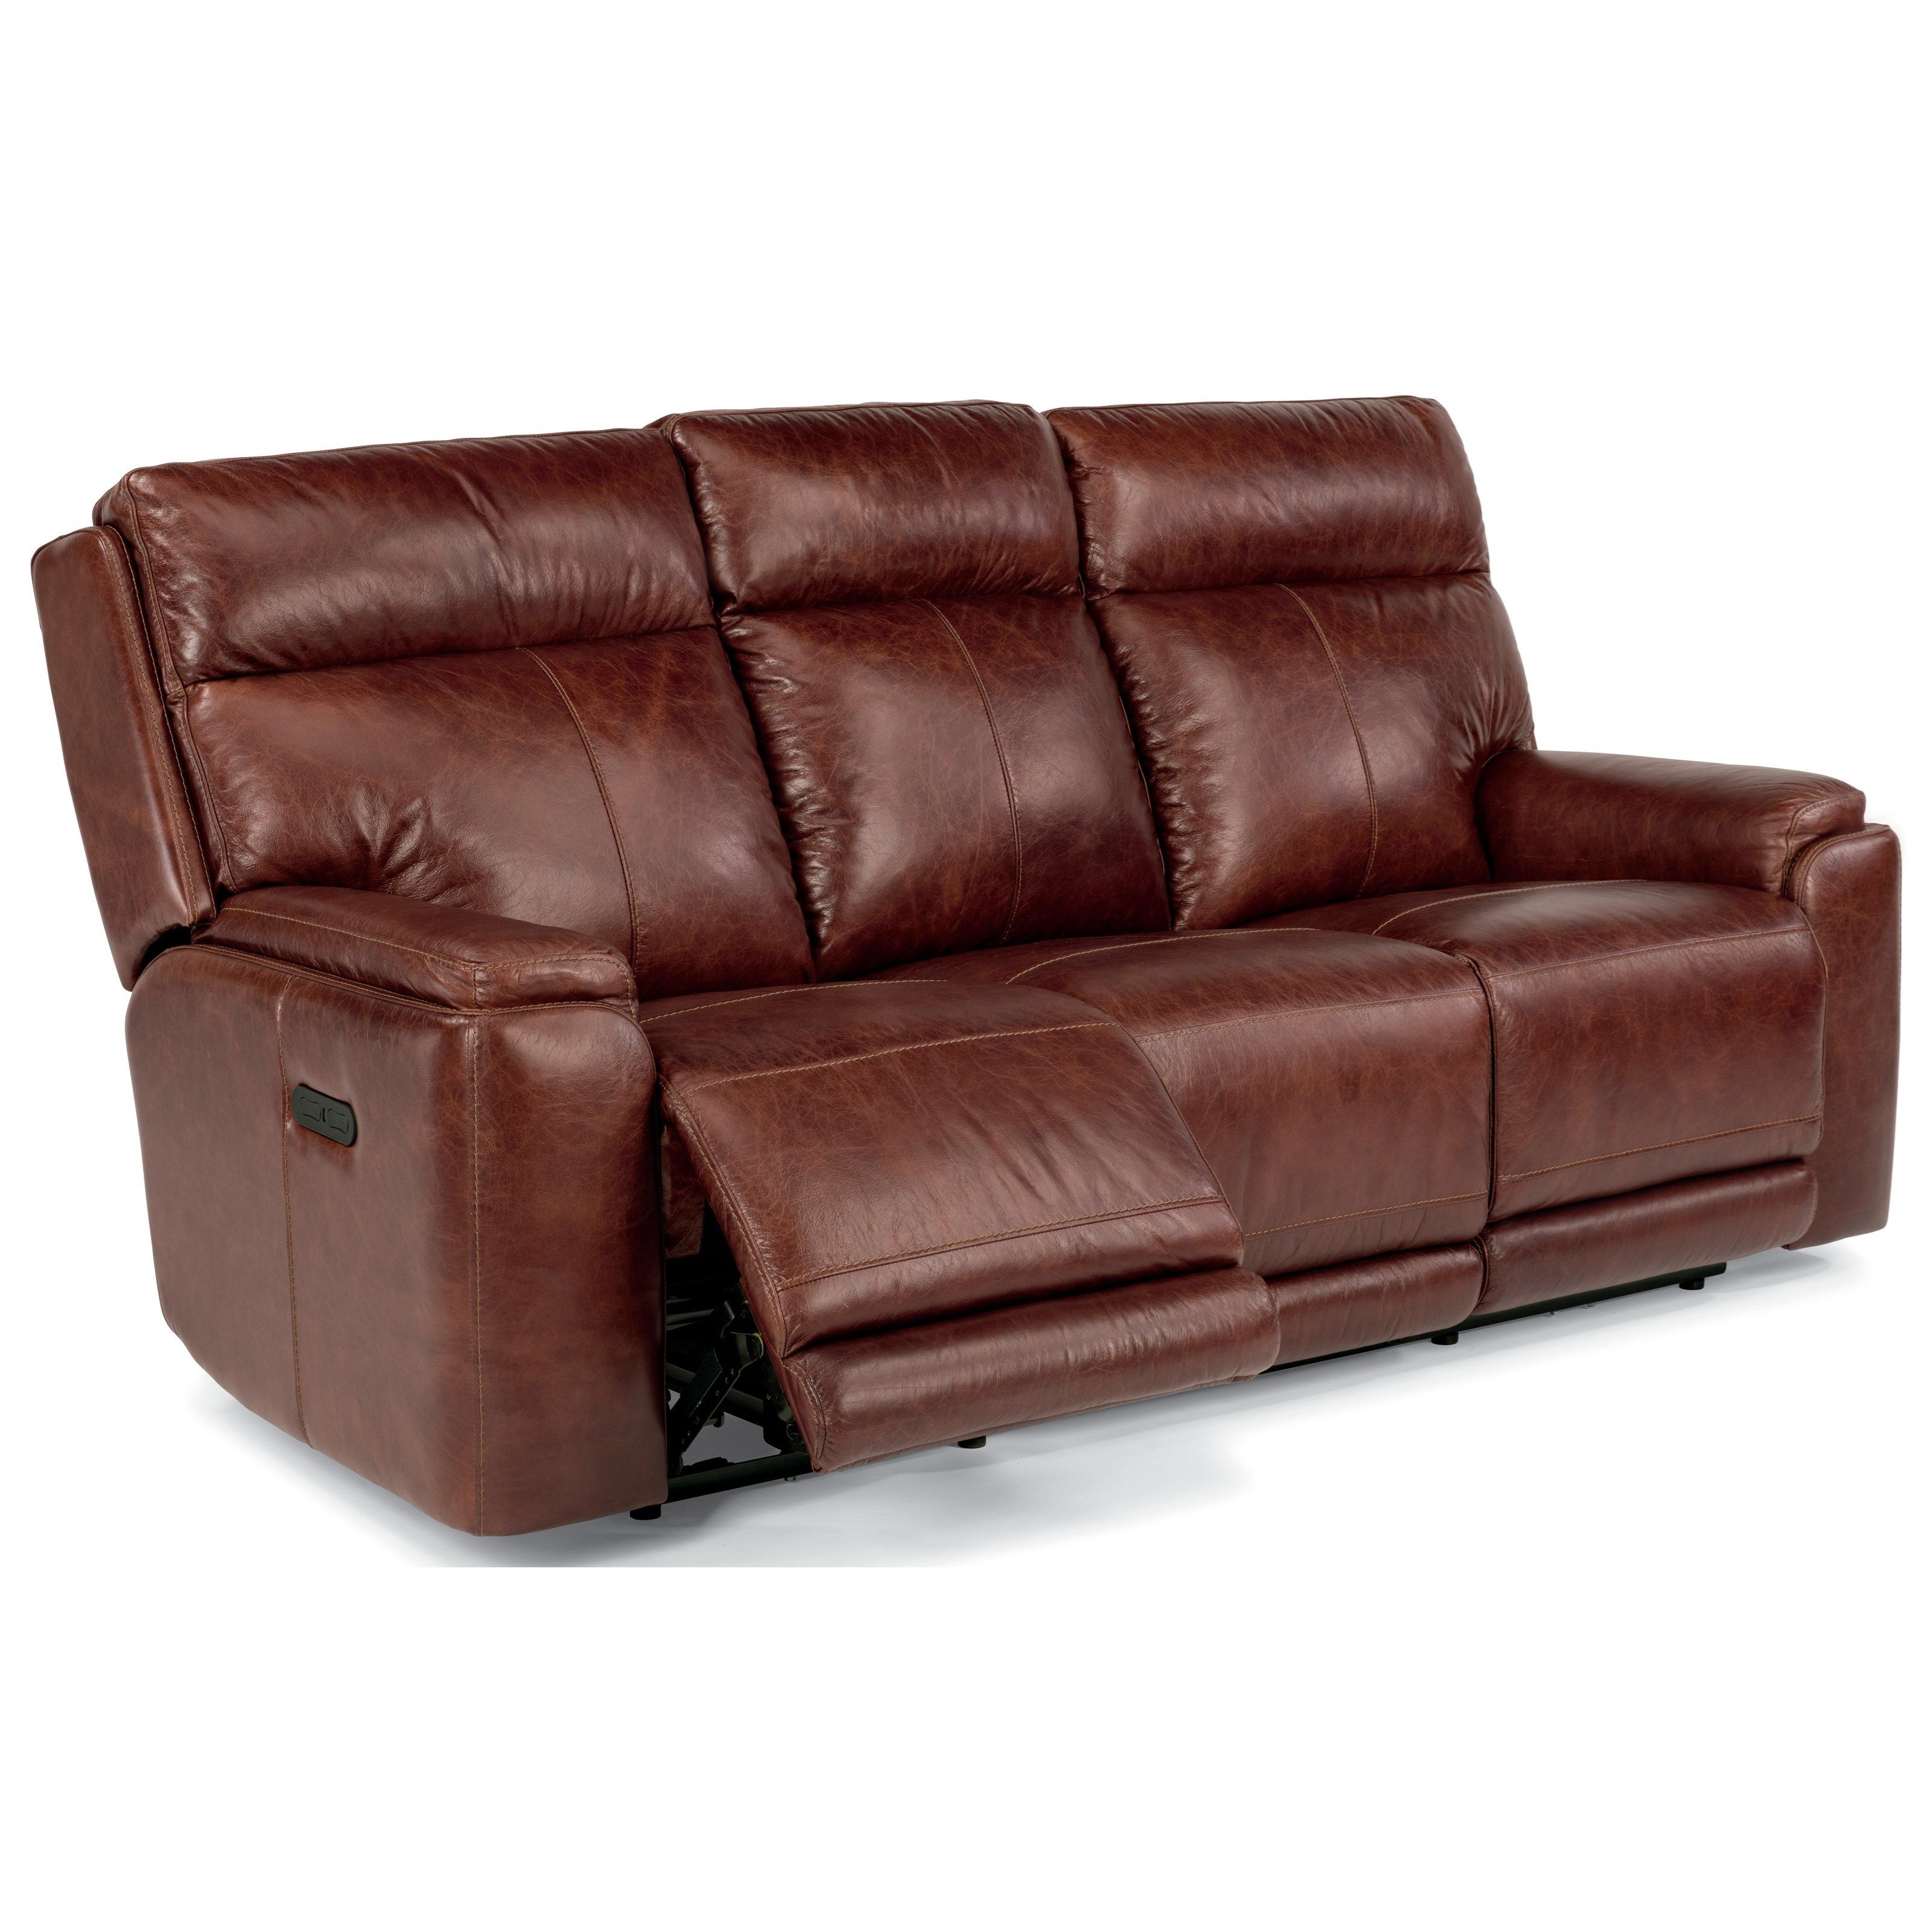 Latitudes Sienna Power Reclining Sofa With Adjustable Headrests And Usb Ports By Flexsteel At Wayside Furniture Power Reclining Sofa Reclining Sofa Living Room Leather